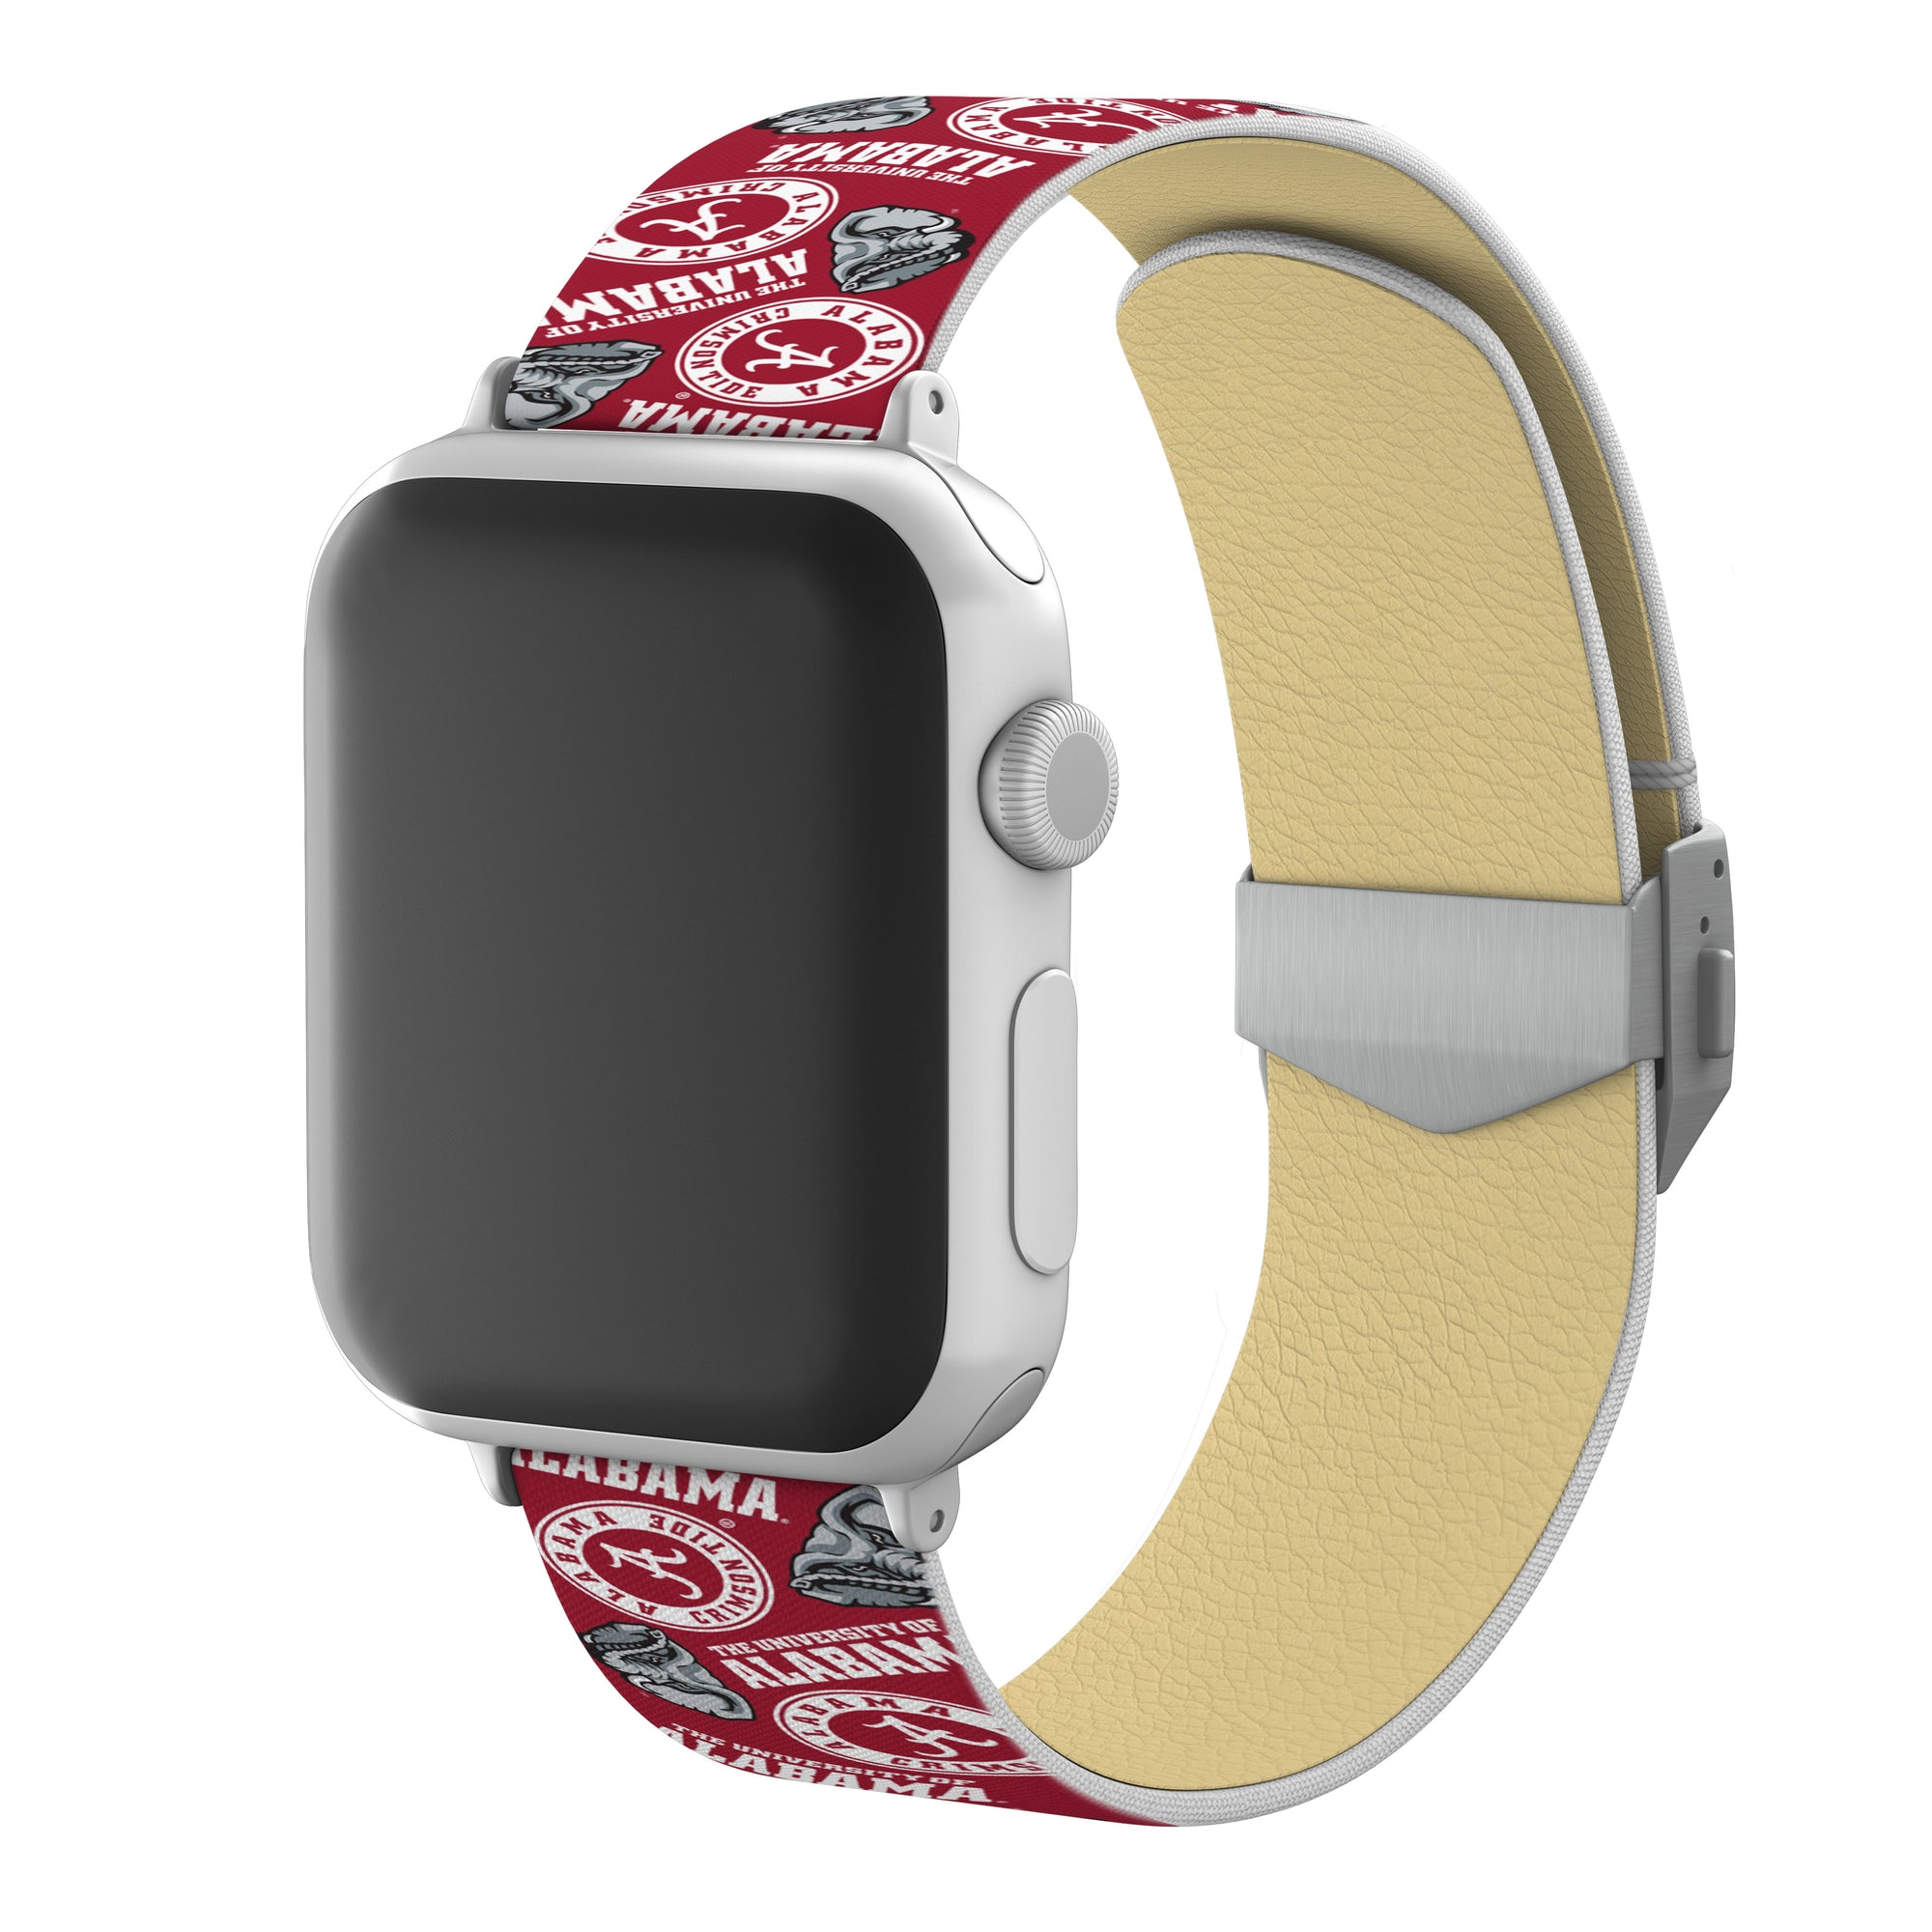 Alabama Crimson Tide Full Print Watch Band With Engraved Buckle - AffinityBands